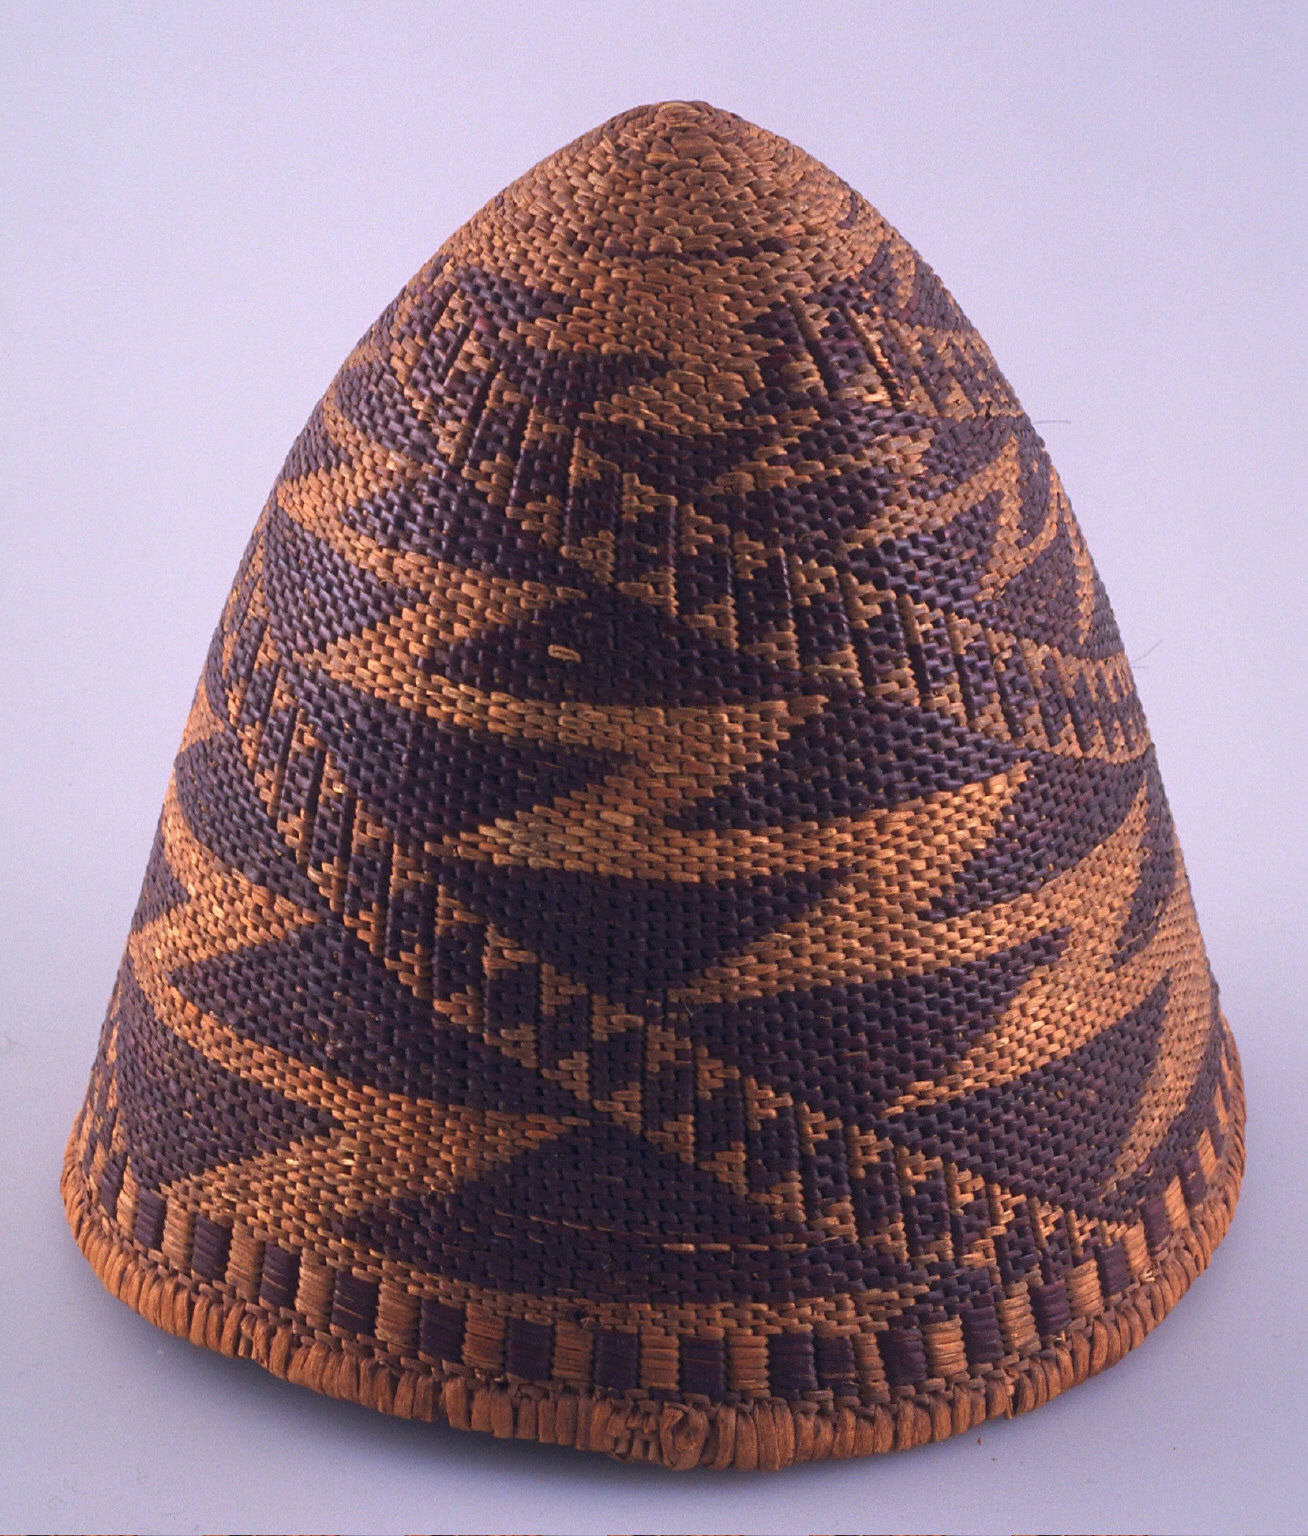 Conical basket